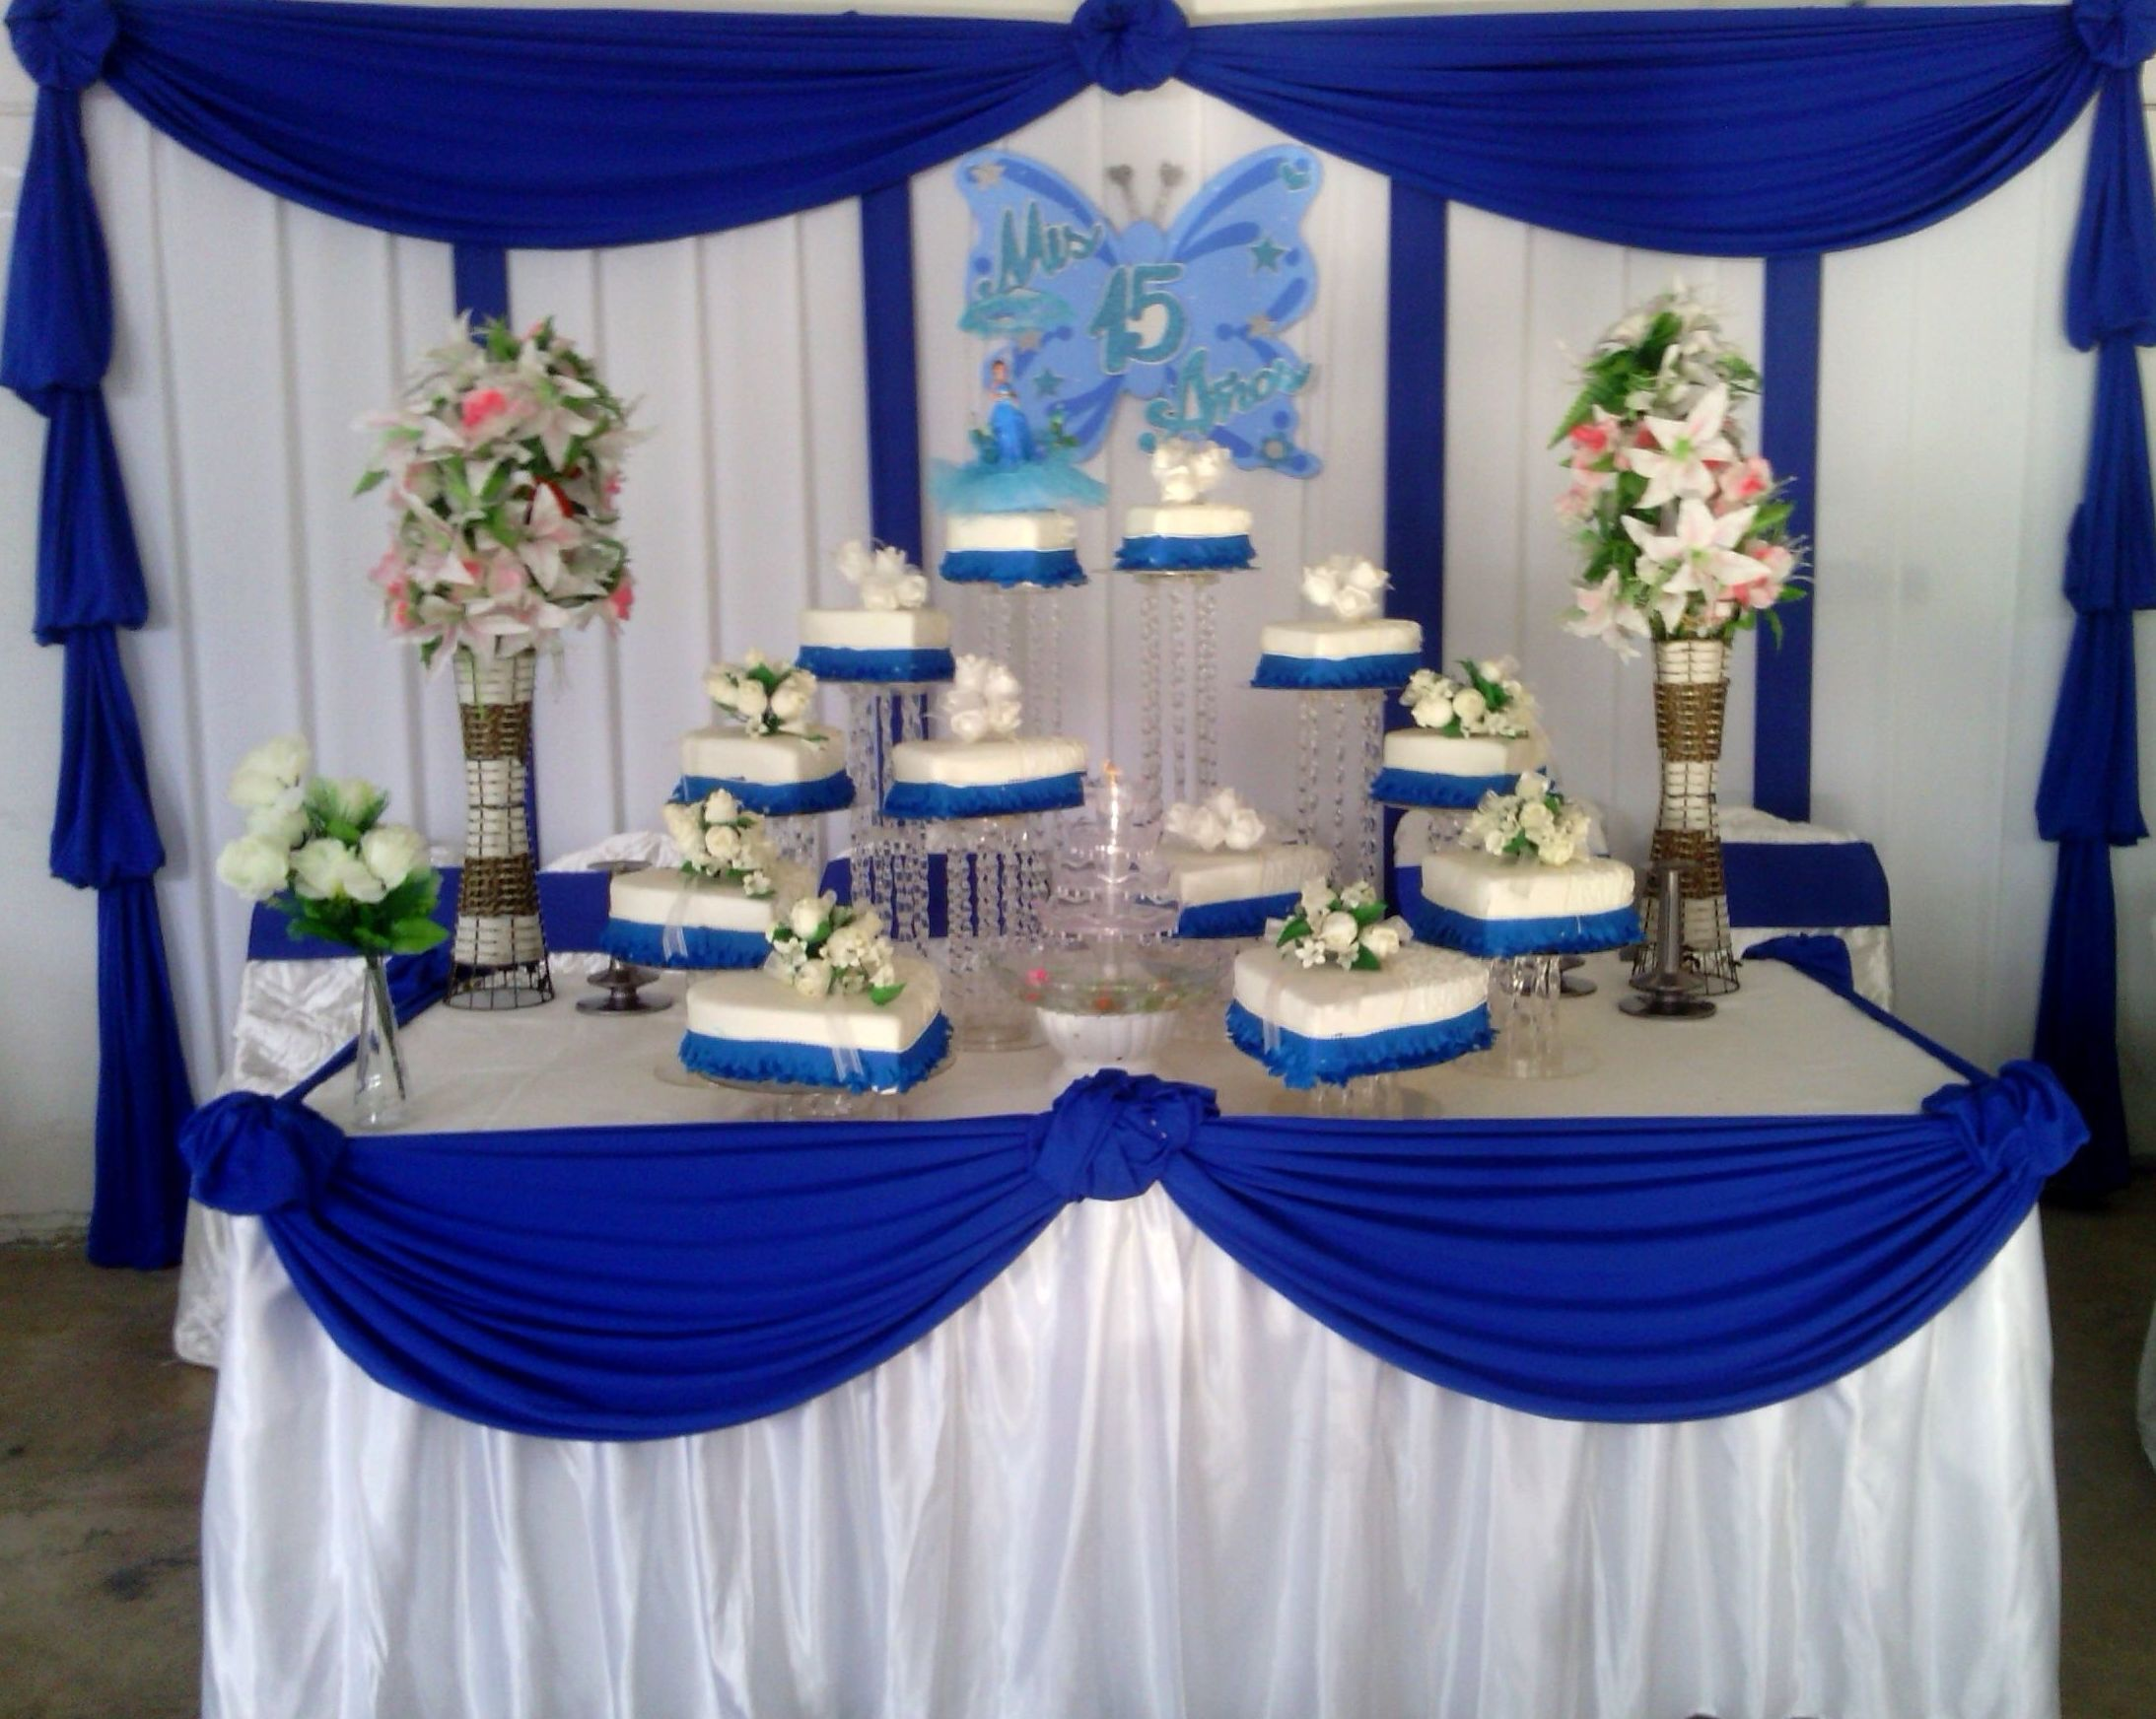 Decoraciones en color azul especial para quince a os for Decoracion quince anos